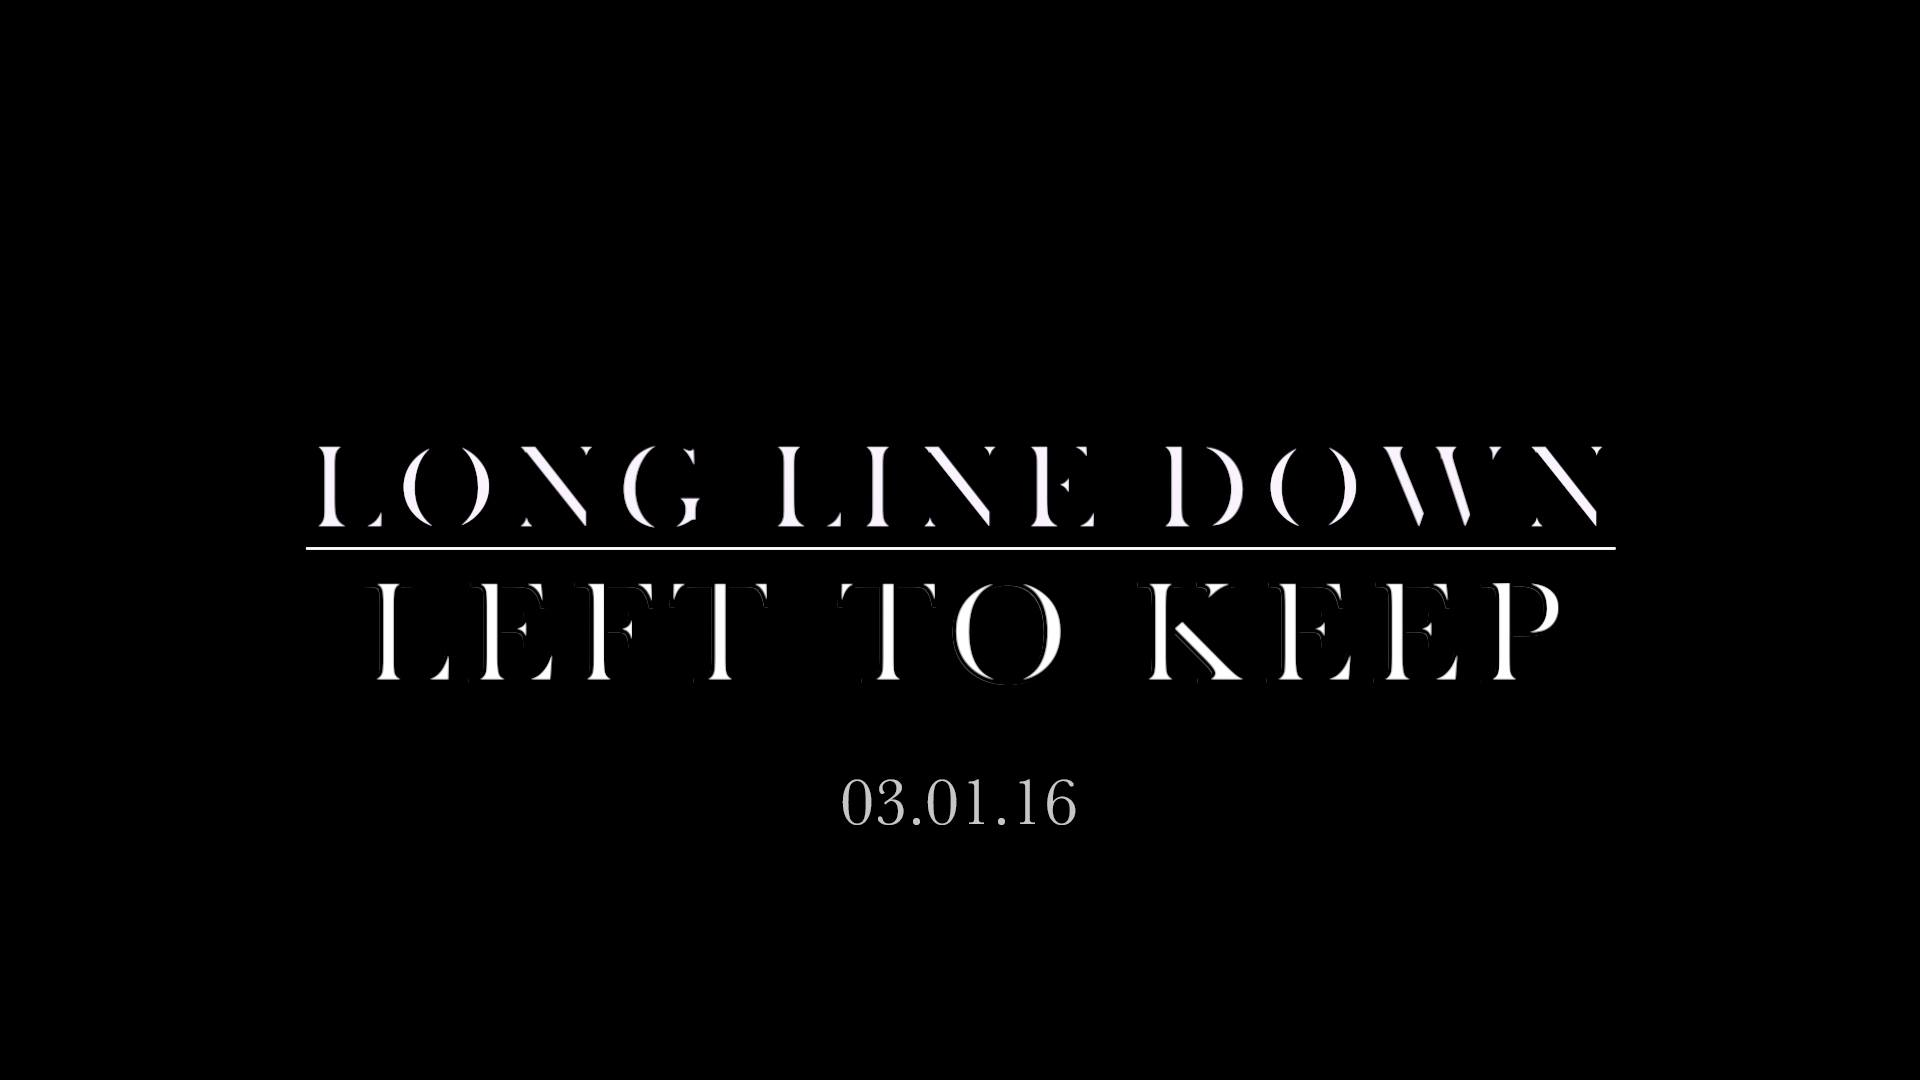 Long Line Down - Left To Keep